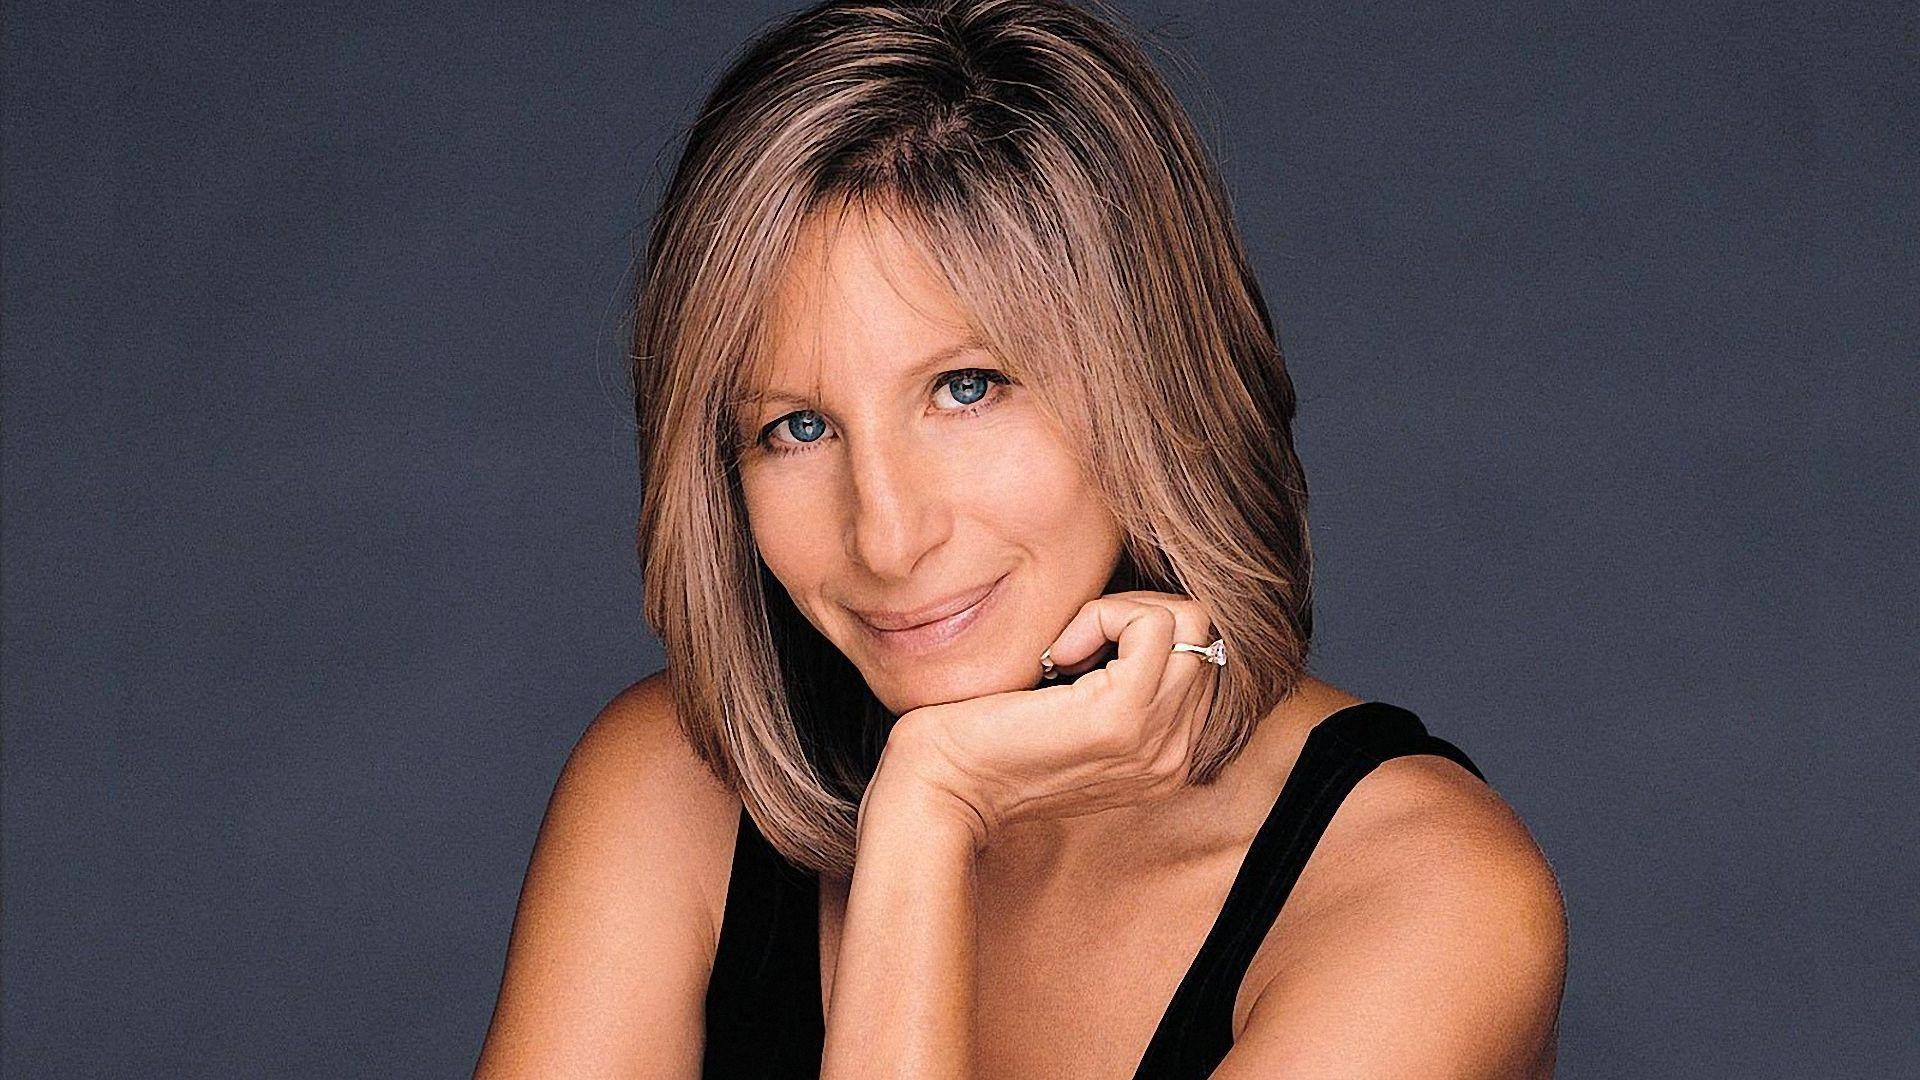 Barbra Streisand Wallpapers